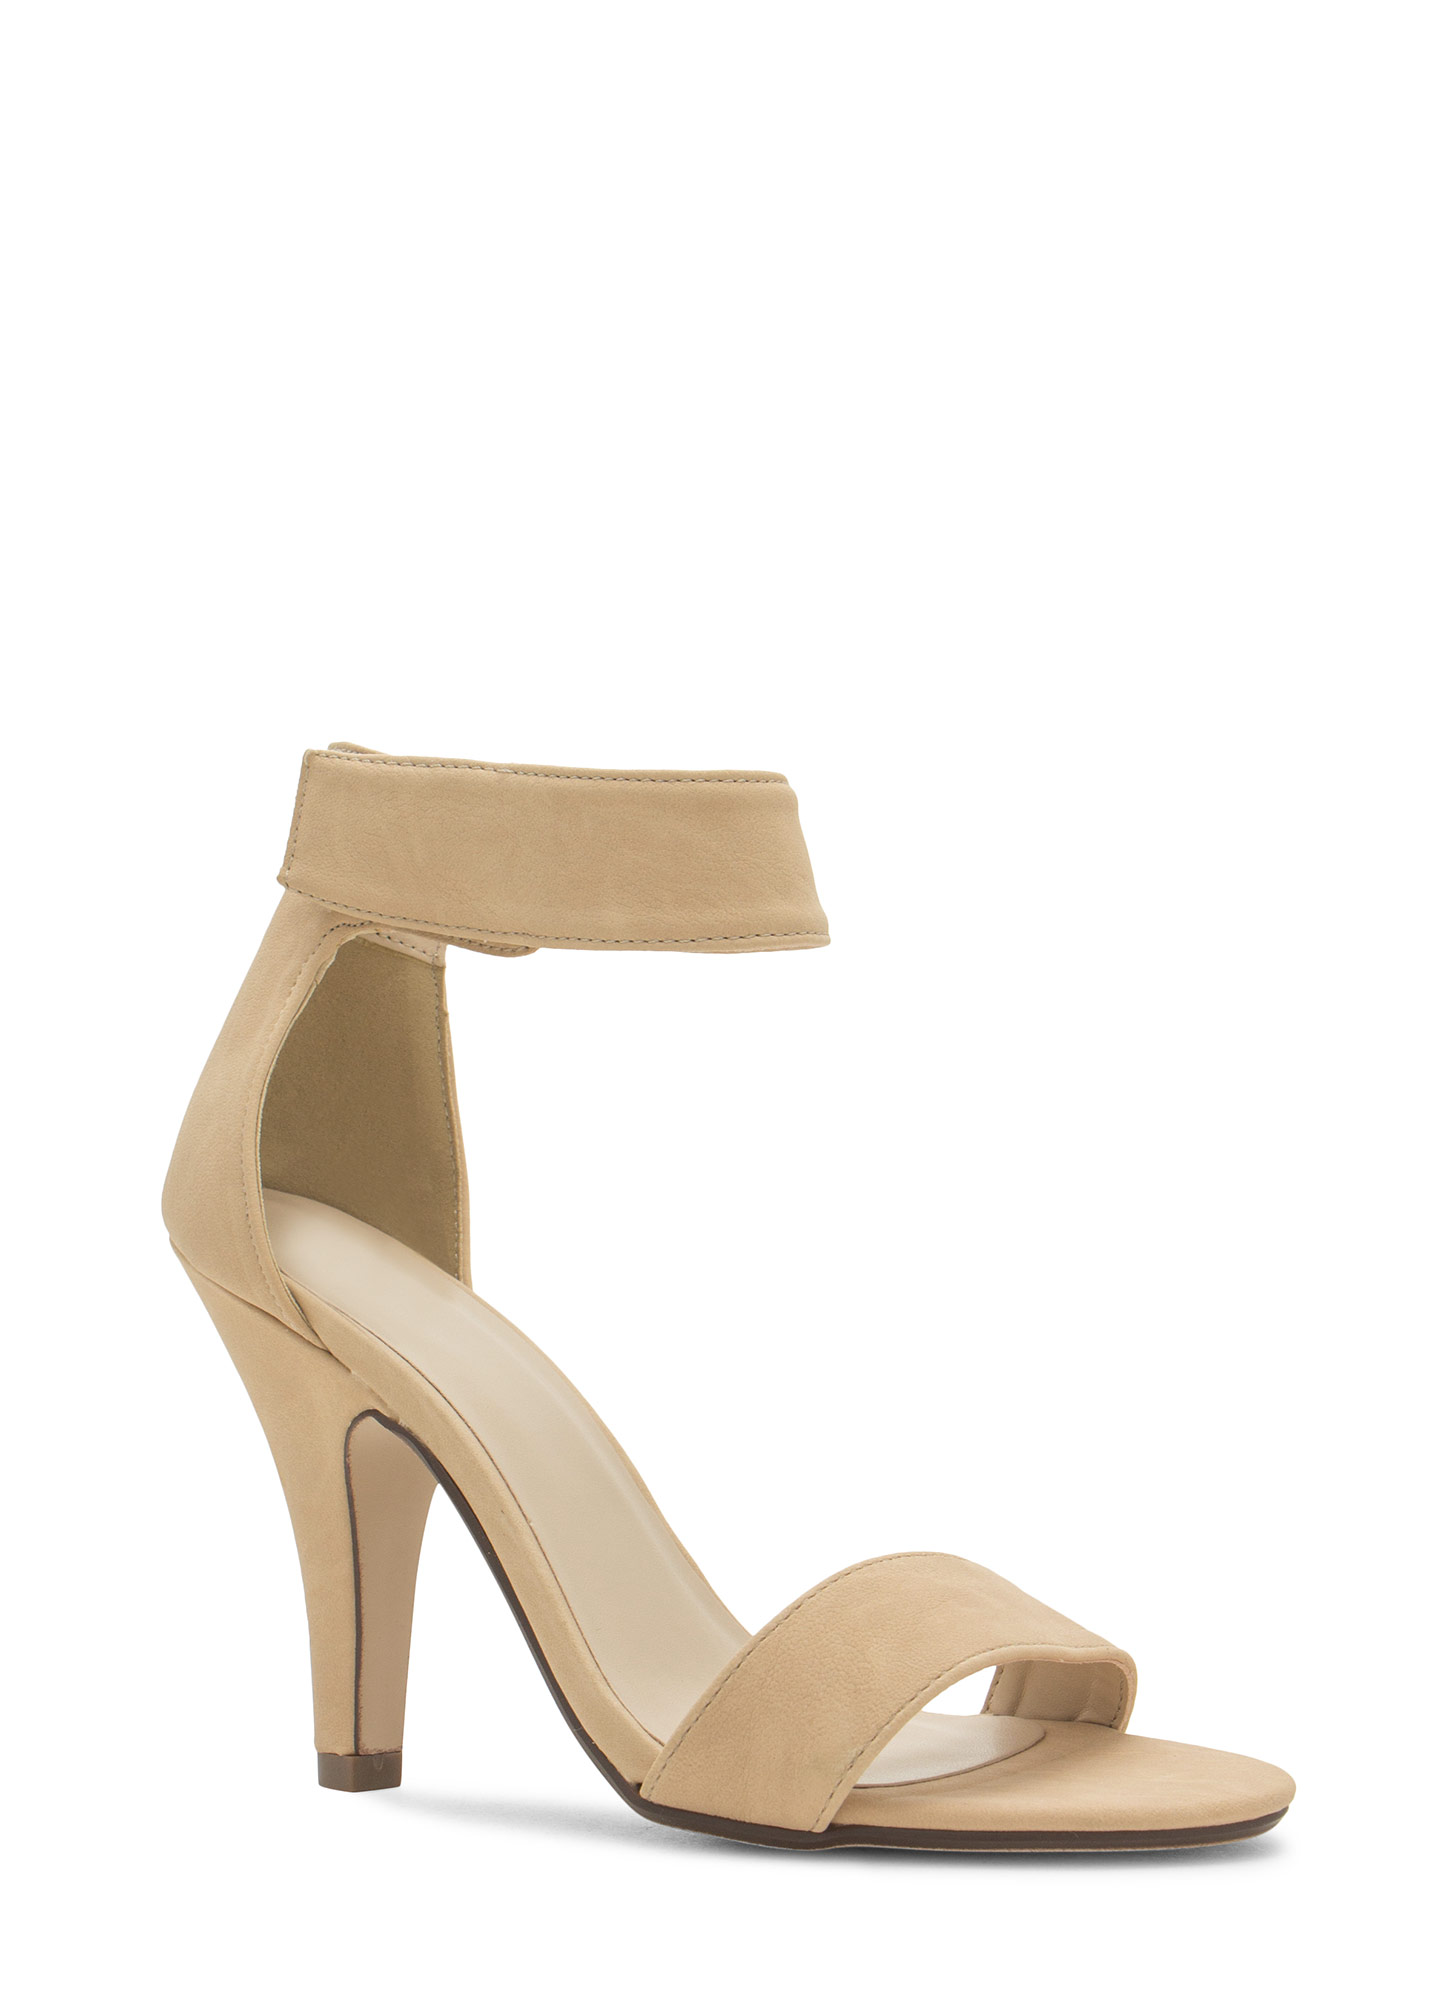 Keep It Simple Faux Nubuck Heels BEIGE